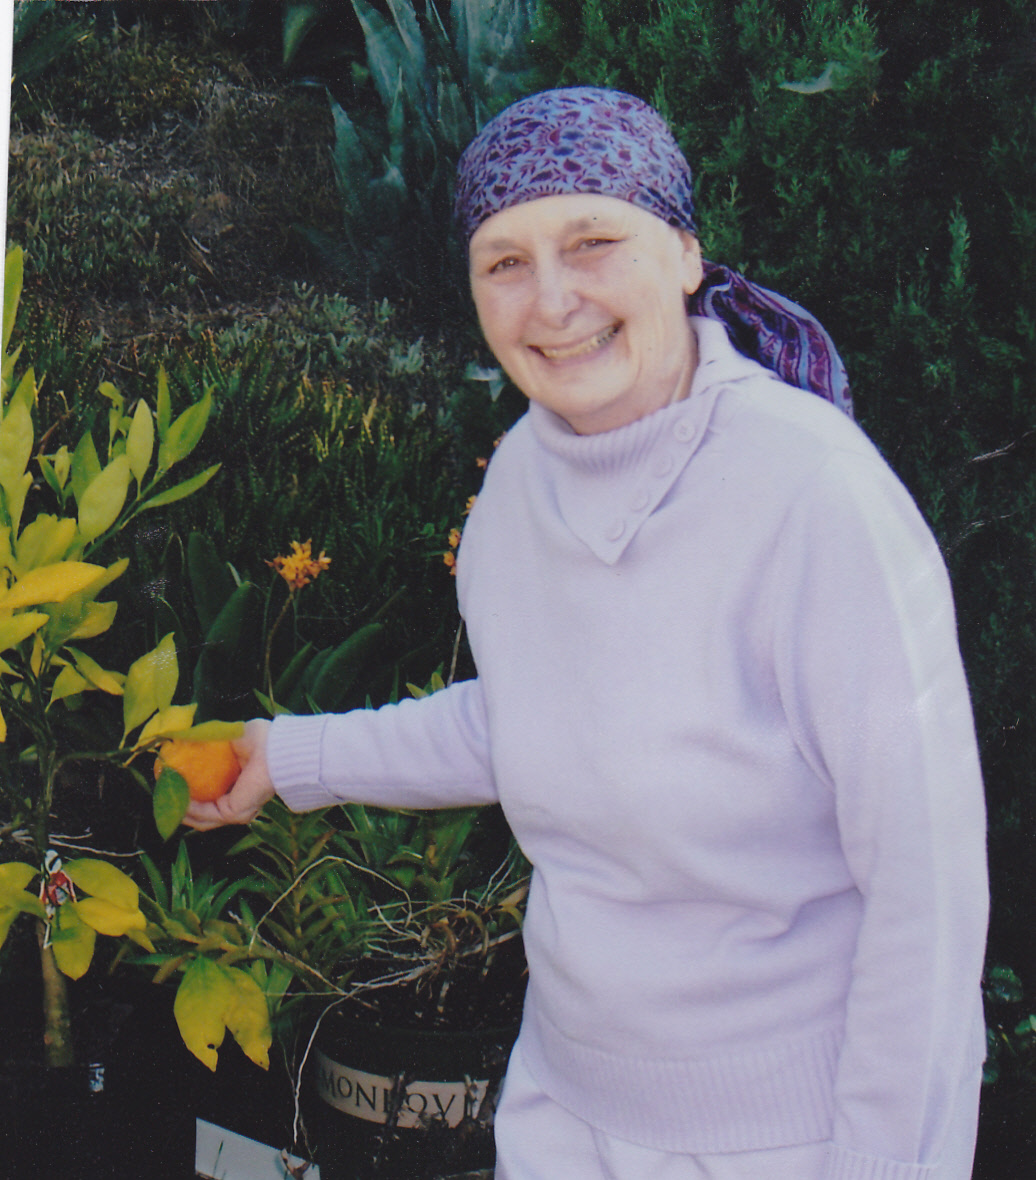 Mary Jo picking pears after completing chemotherapy.